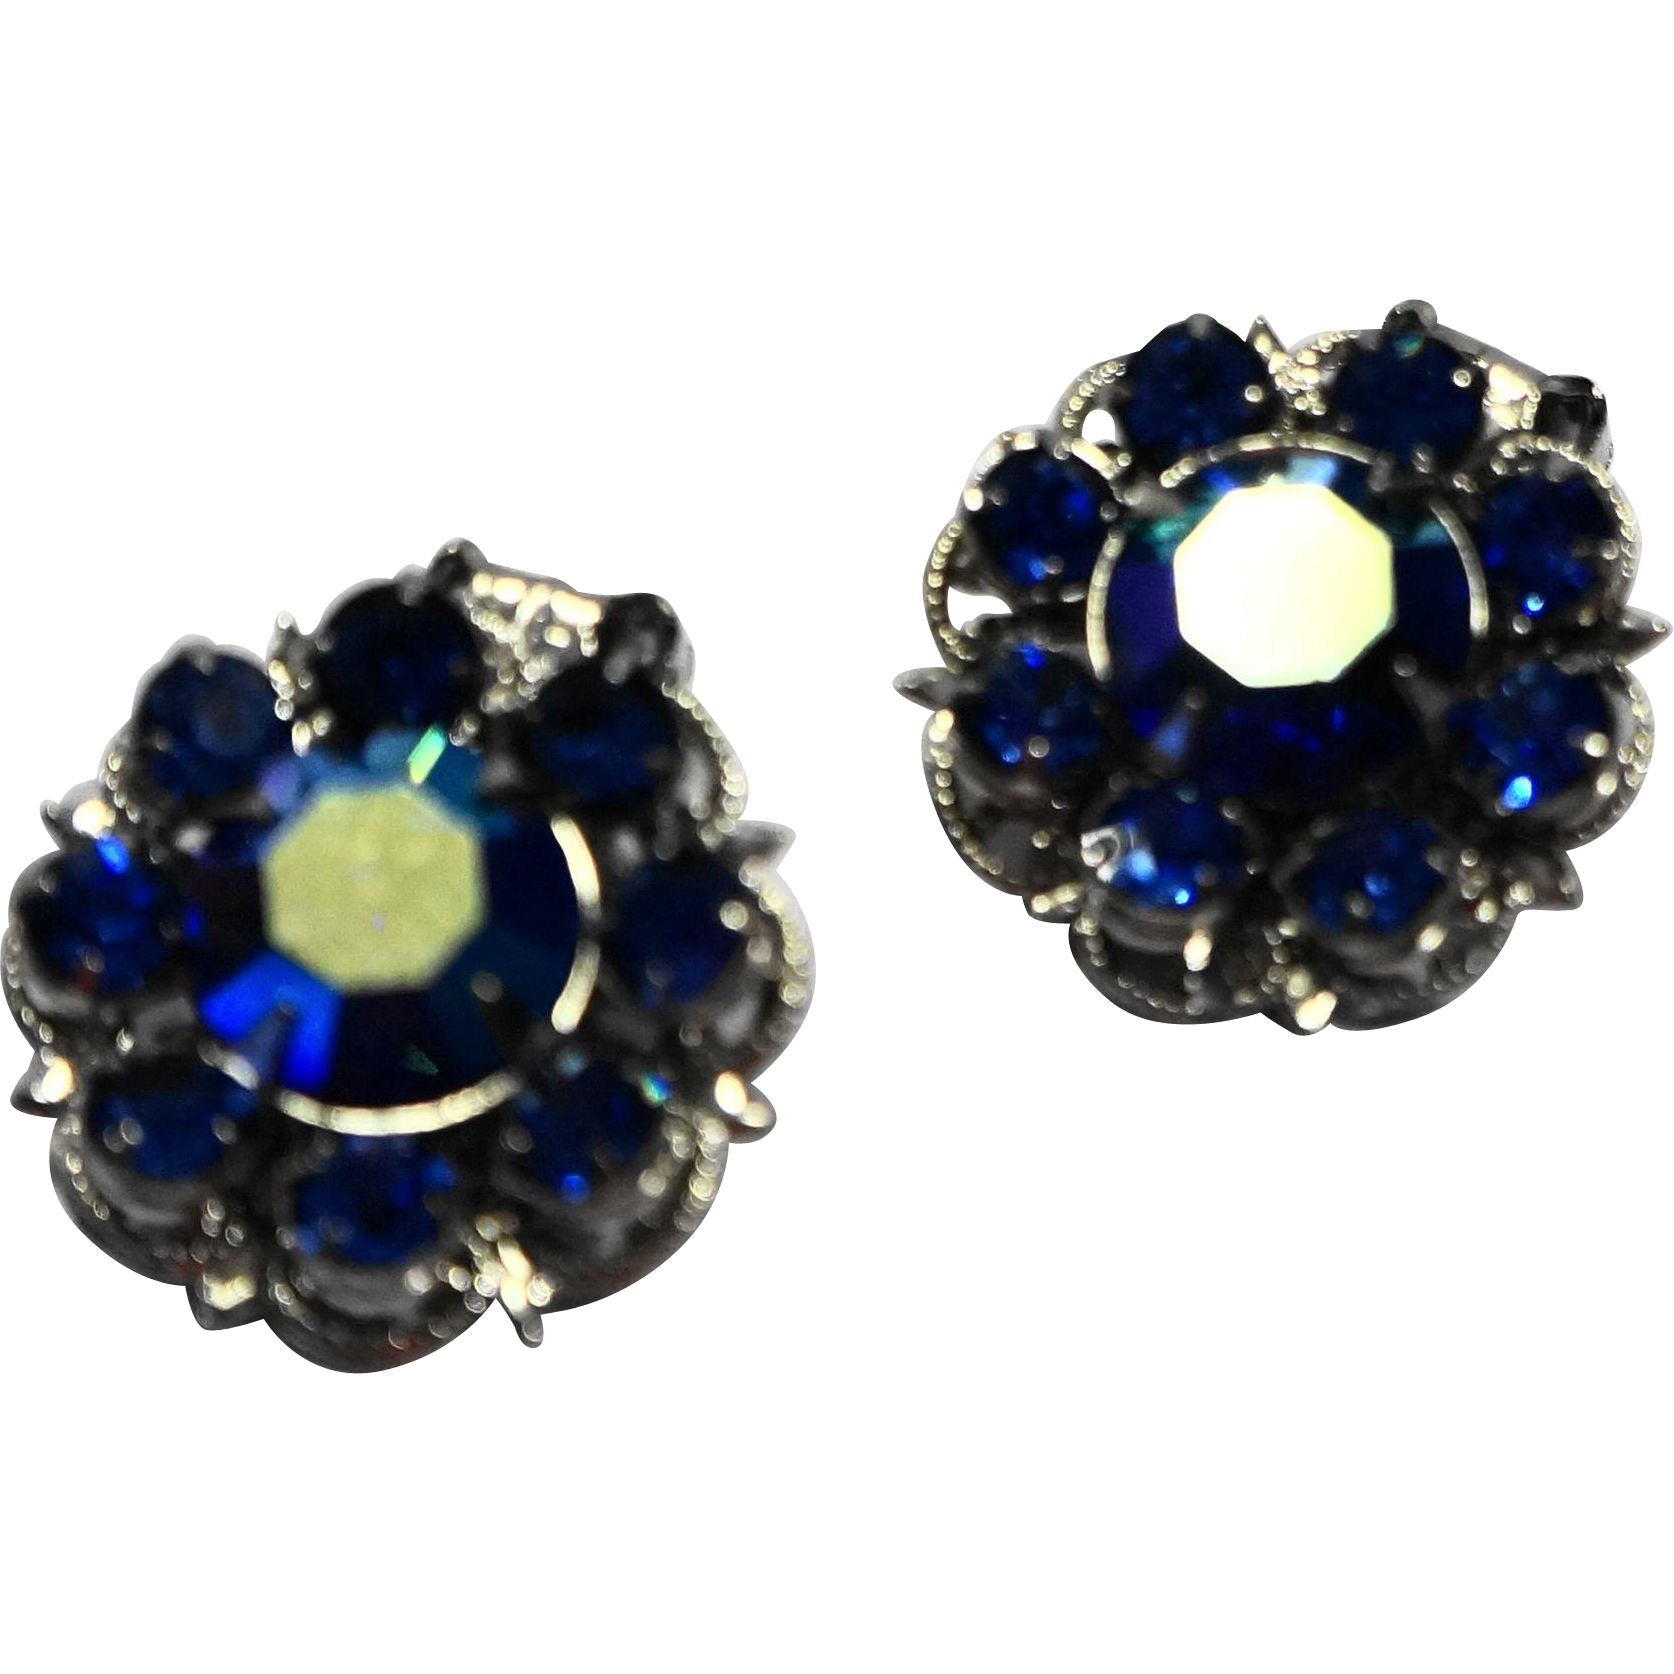 Bright Blue Rhinestone Aurora Borealis AB Coated Silver Tone Clip Earrings